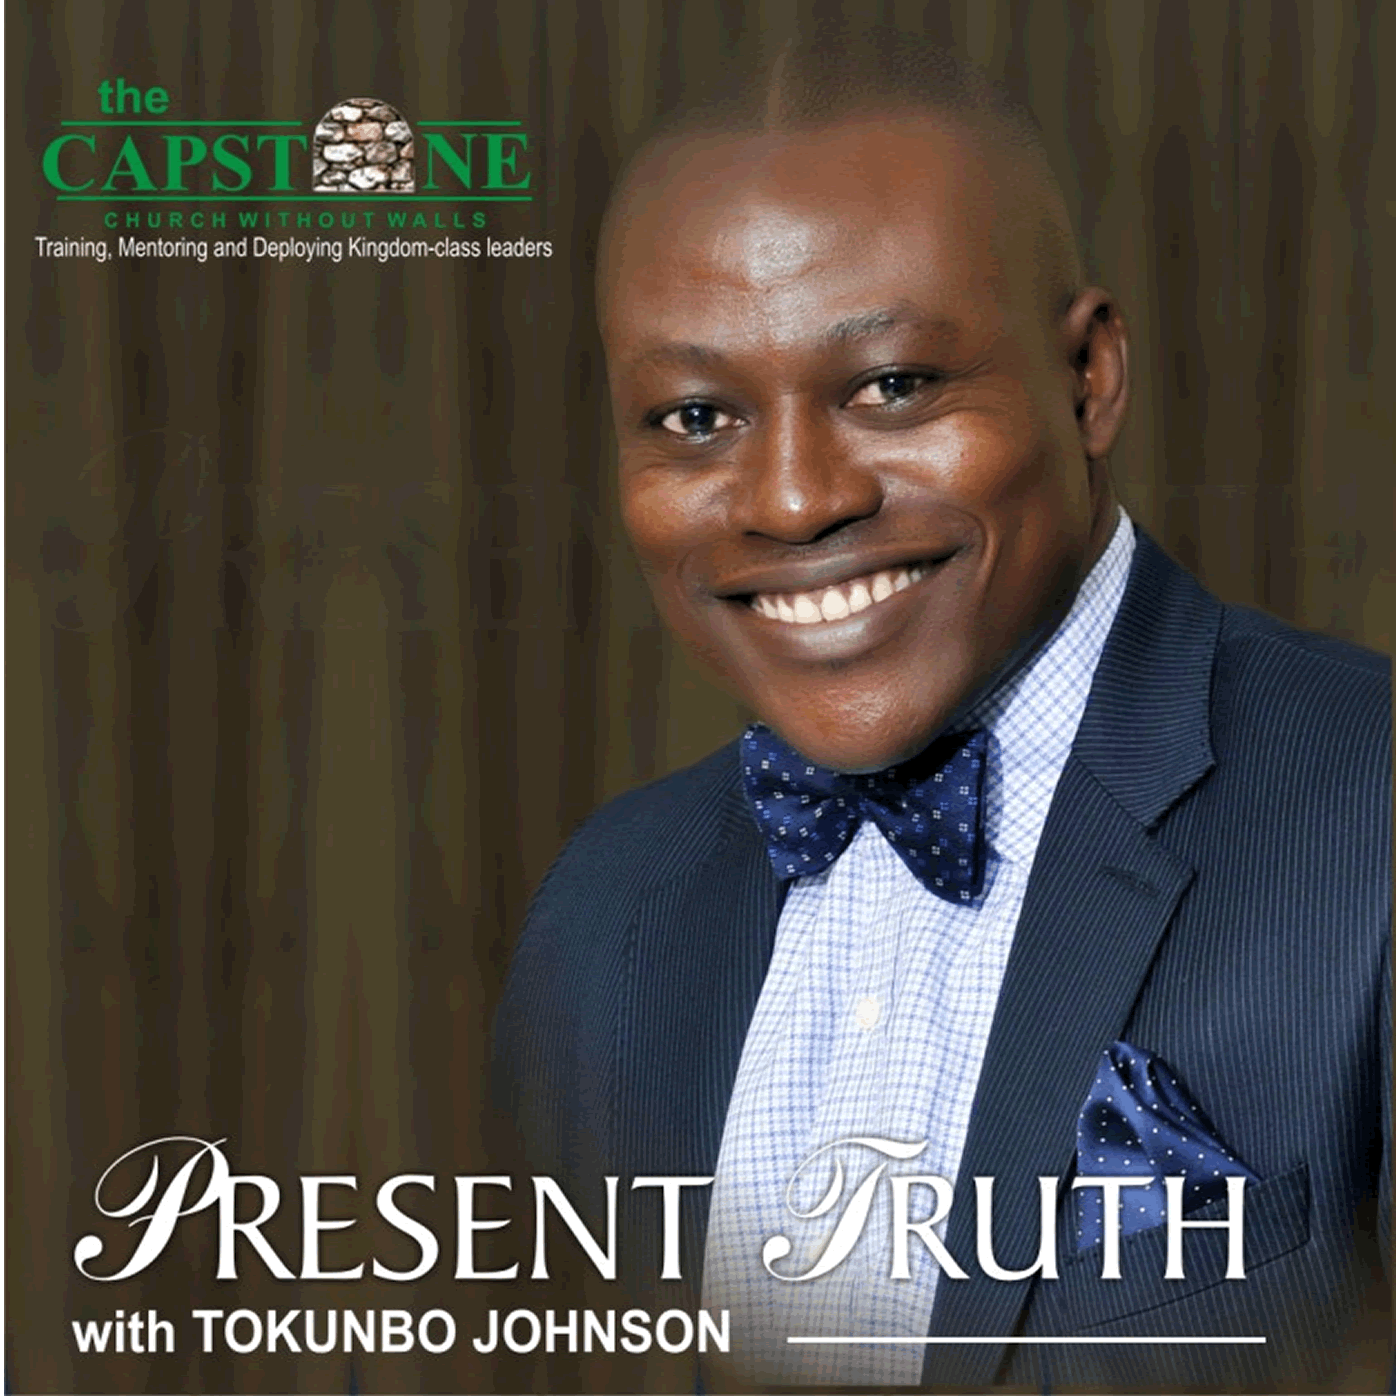 'The Capstone Present Truth'